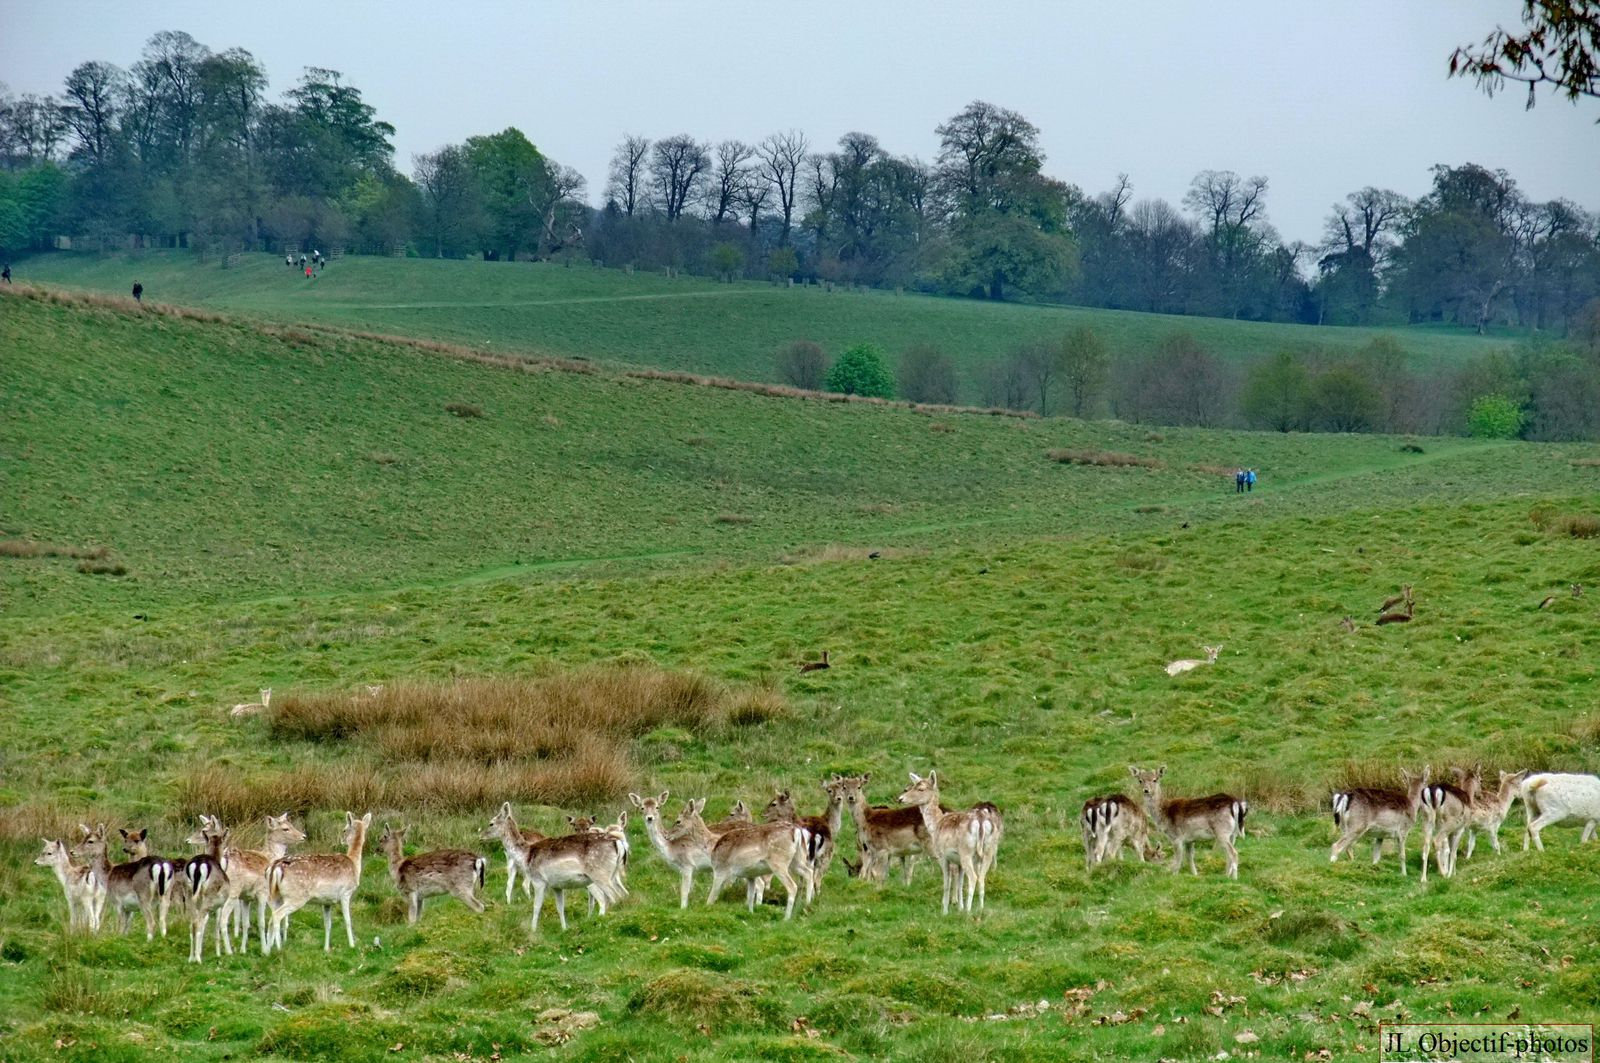 Deers in the Petworth Park, Tillington, Wetrs-Sussex, England